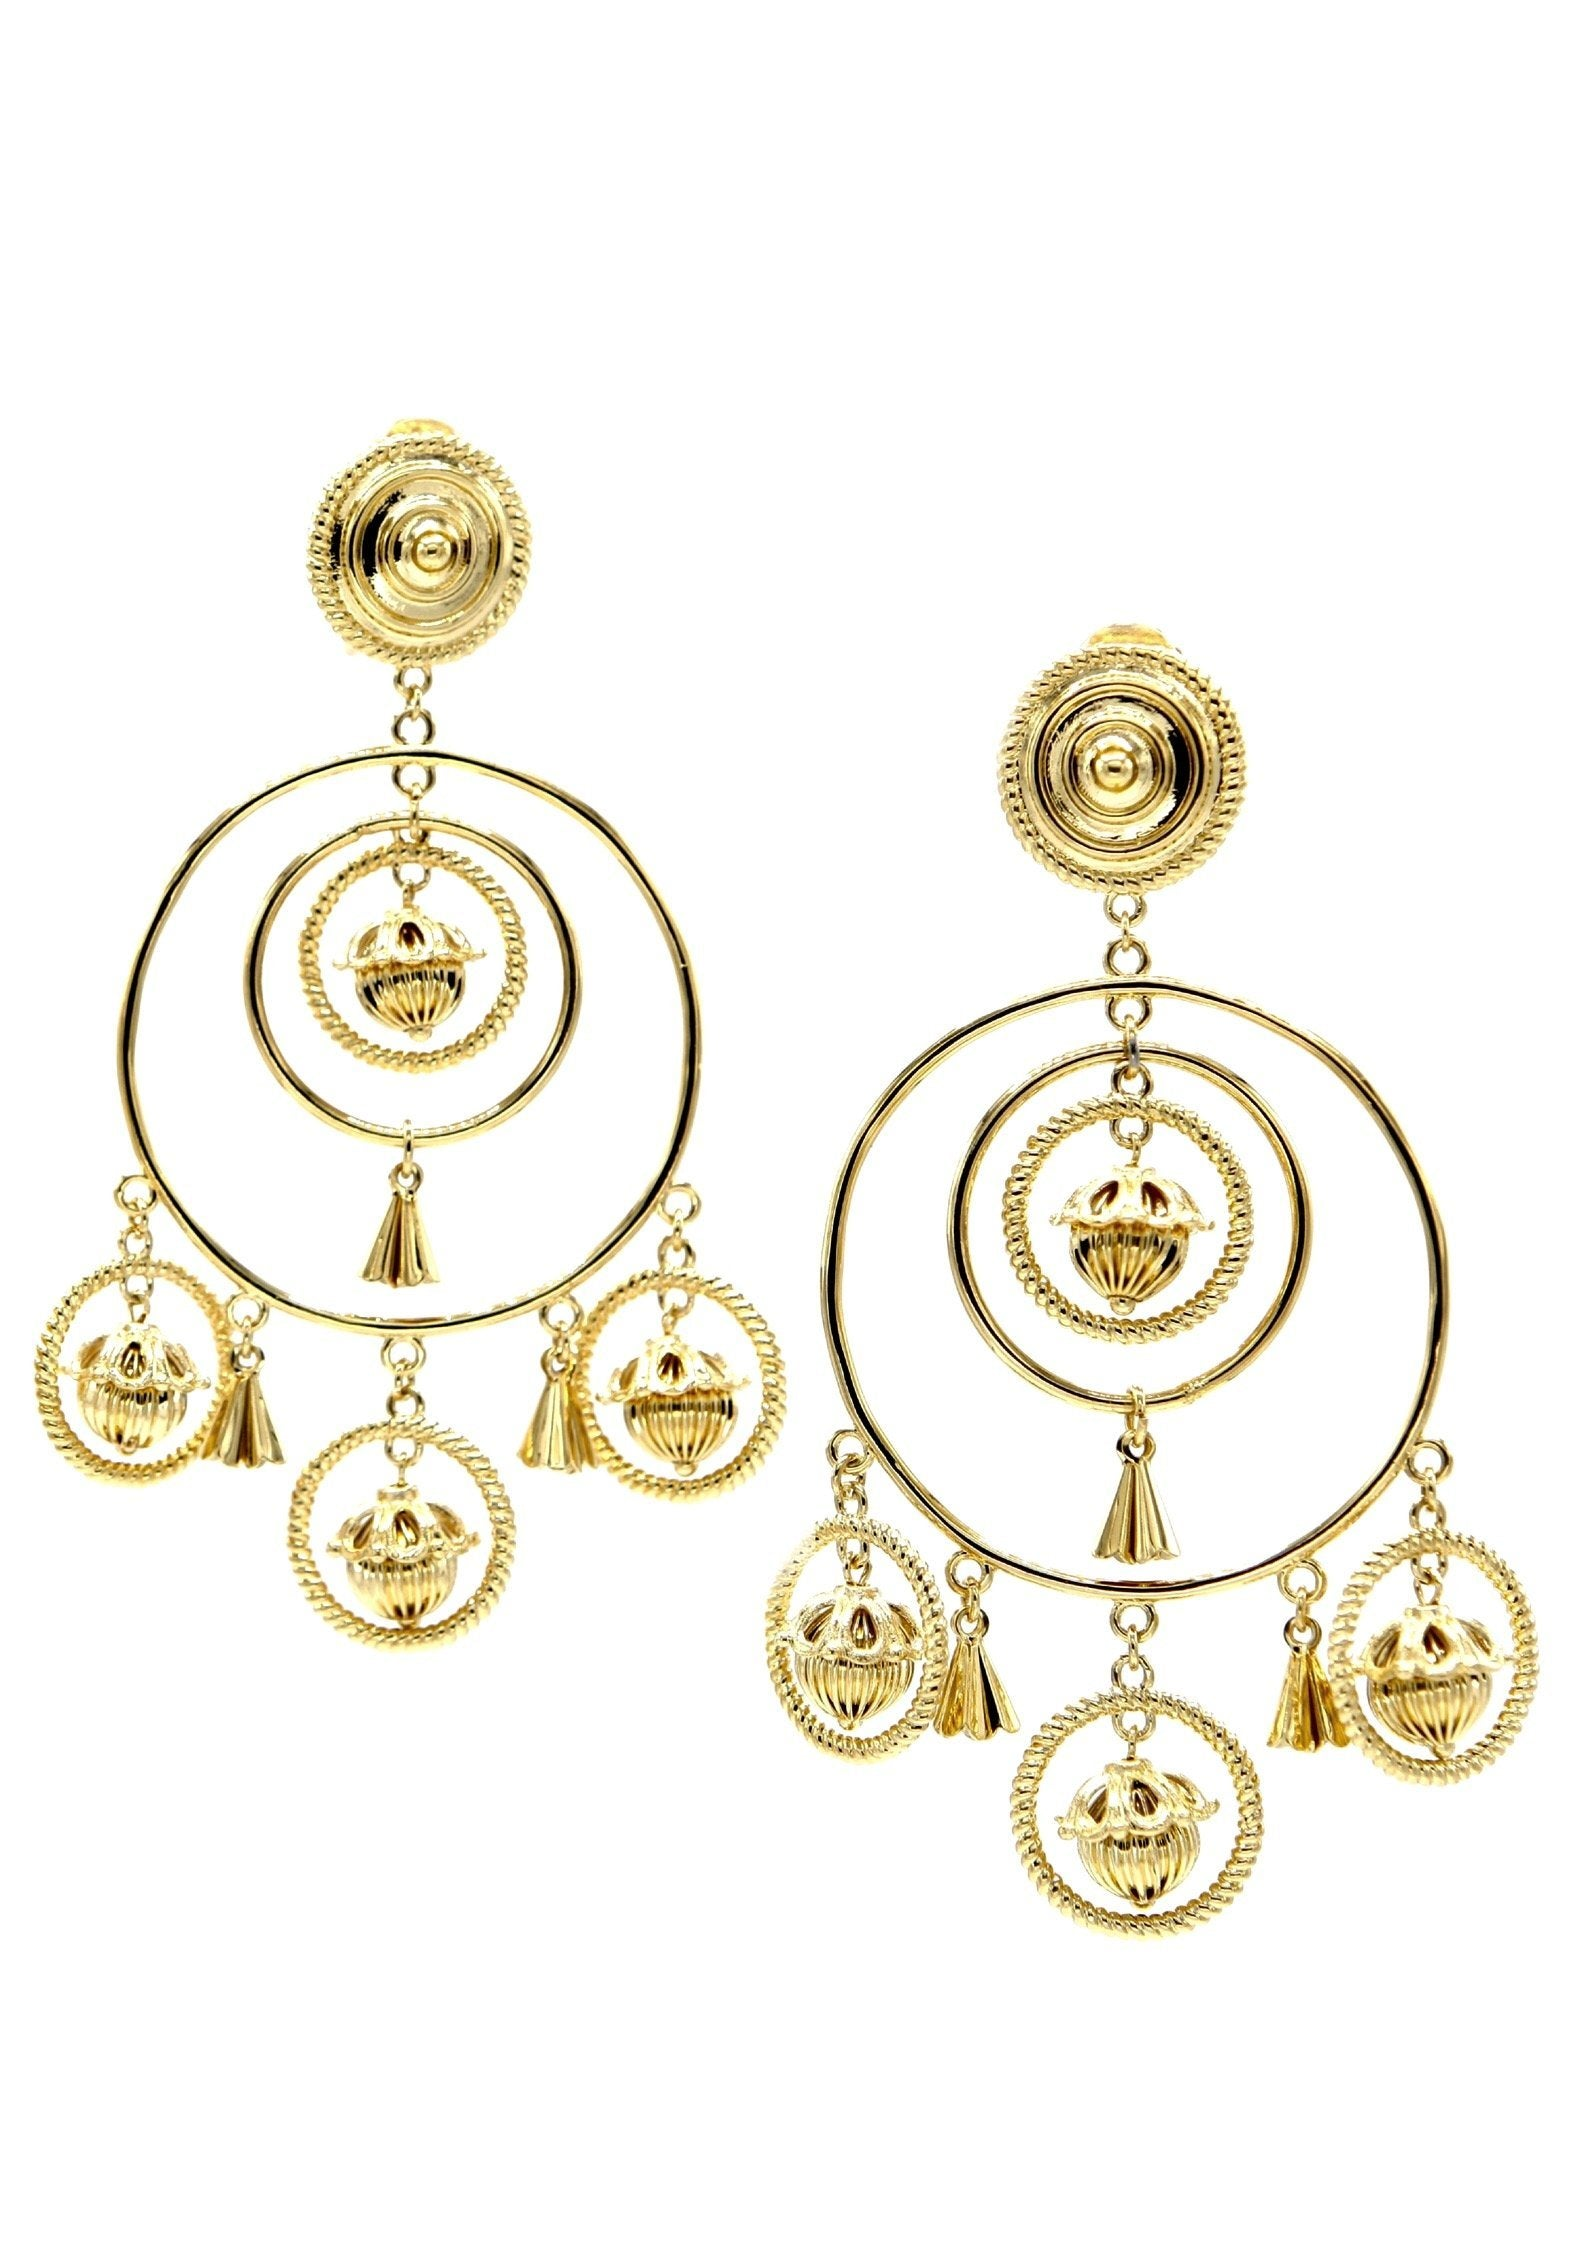 Bollywood chandelier clip on earrings fashion jewelry jared jamin bollywood chandelier clip earrings earrings jared jamin online gold jared jamin aloadofball Image collections